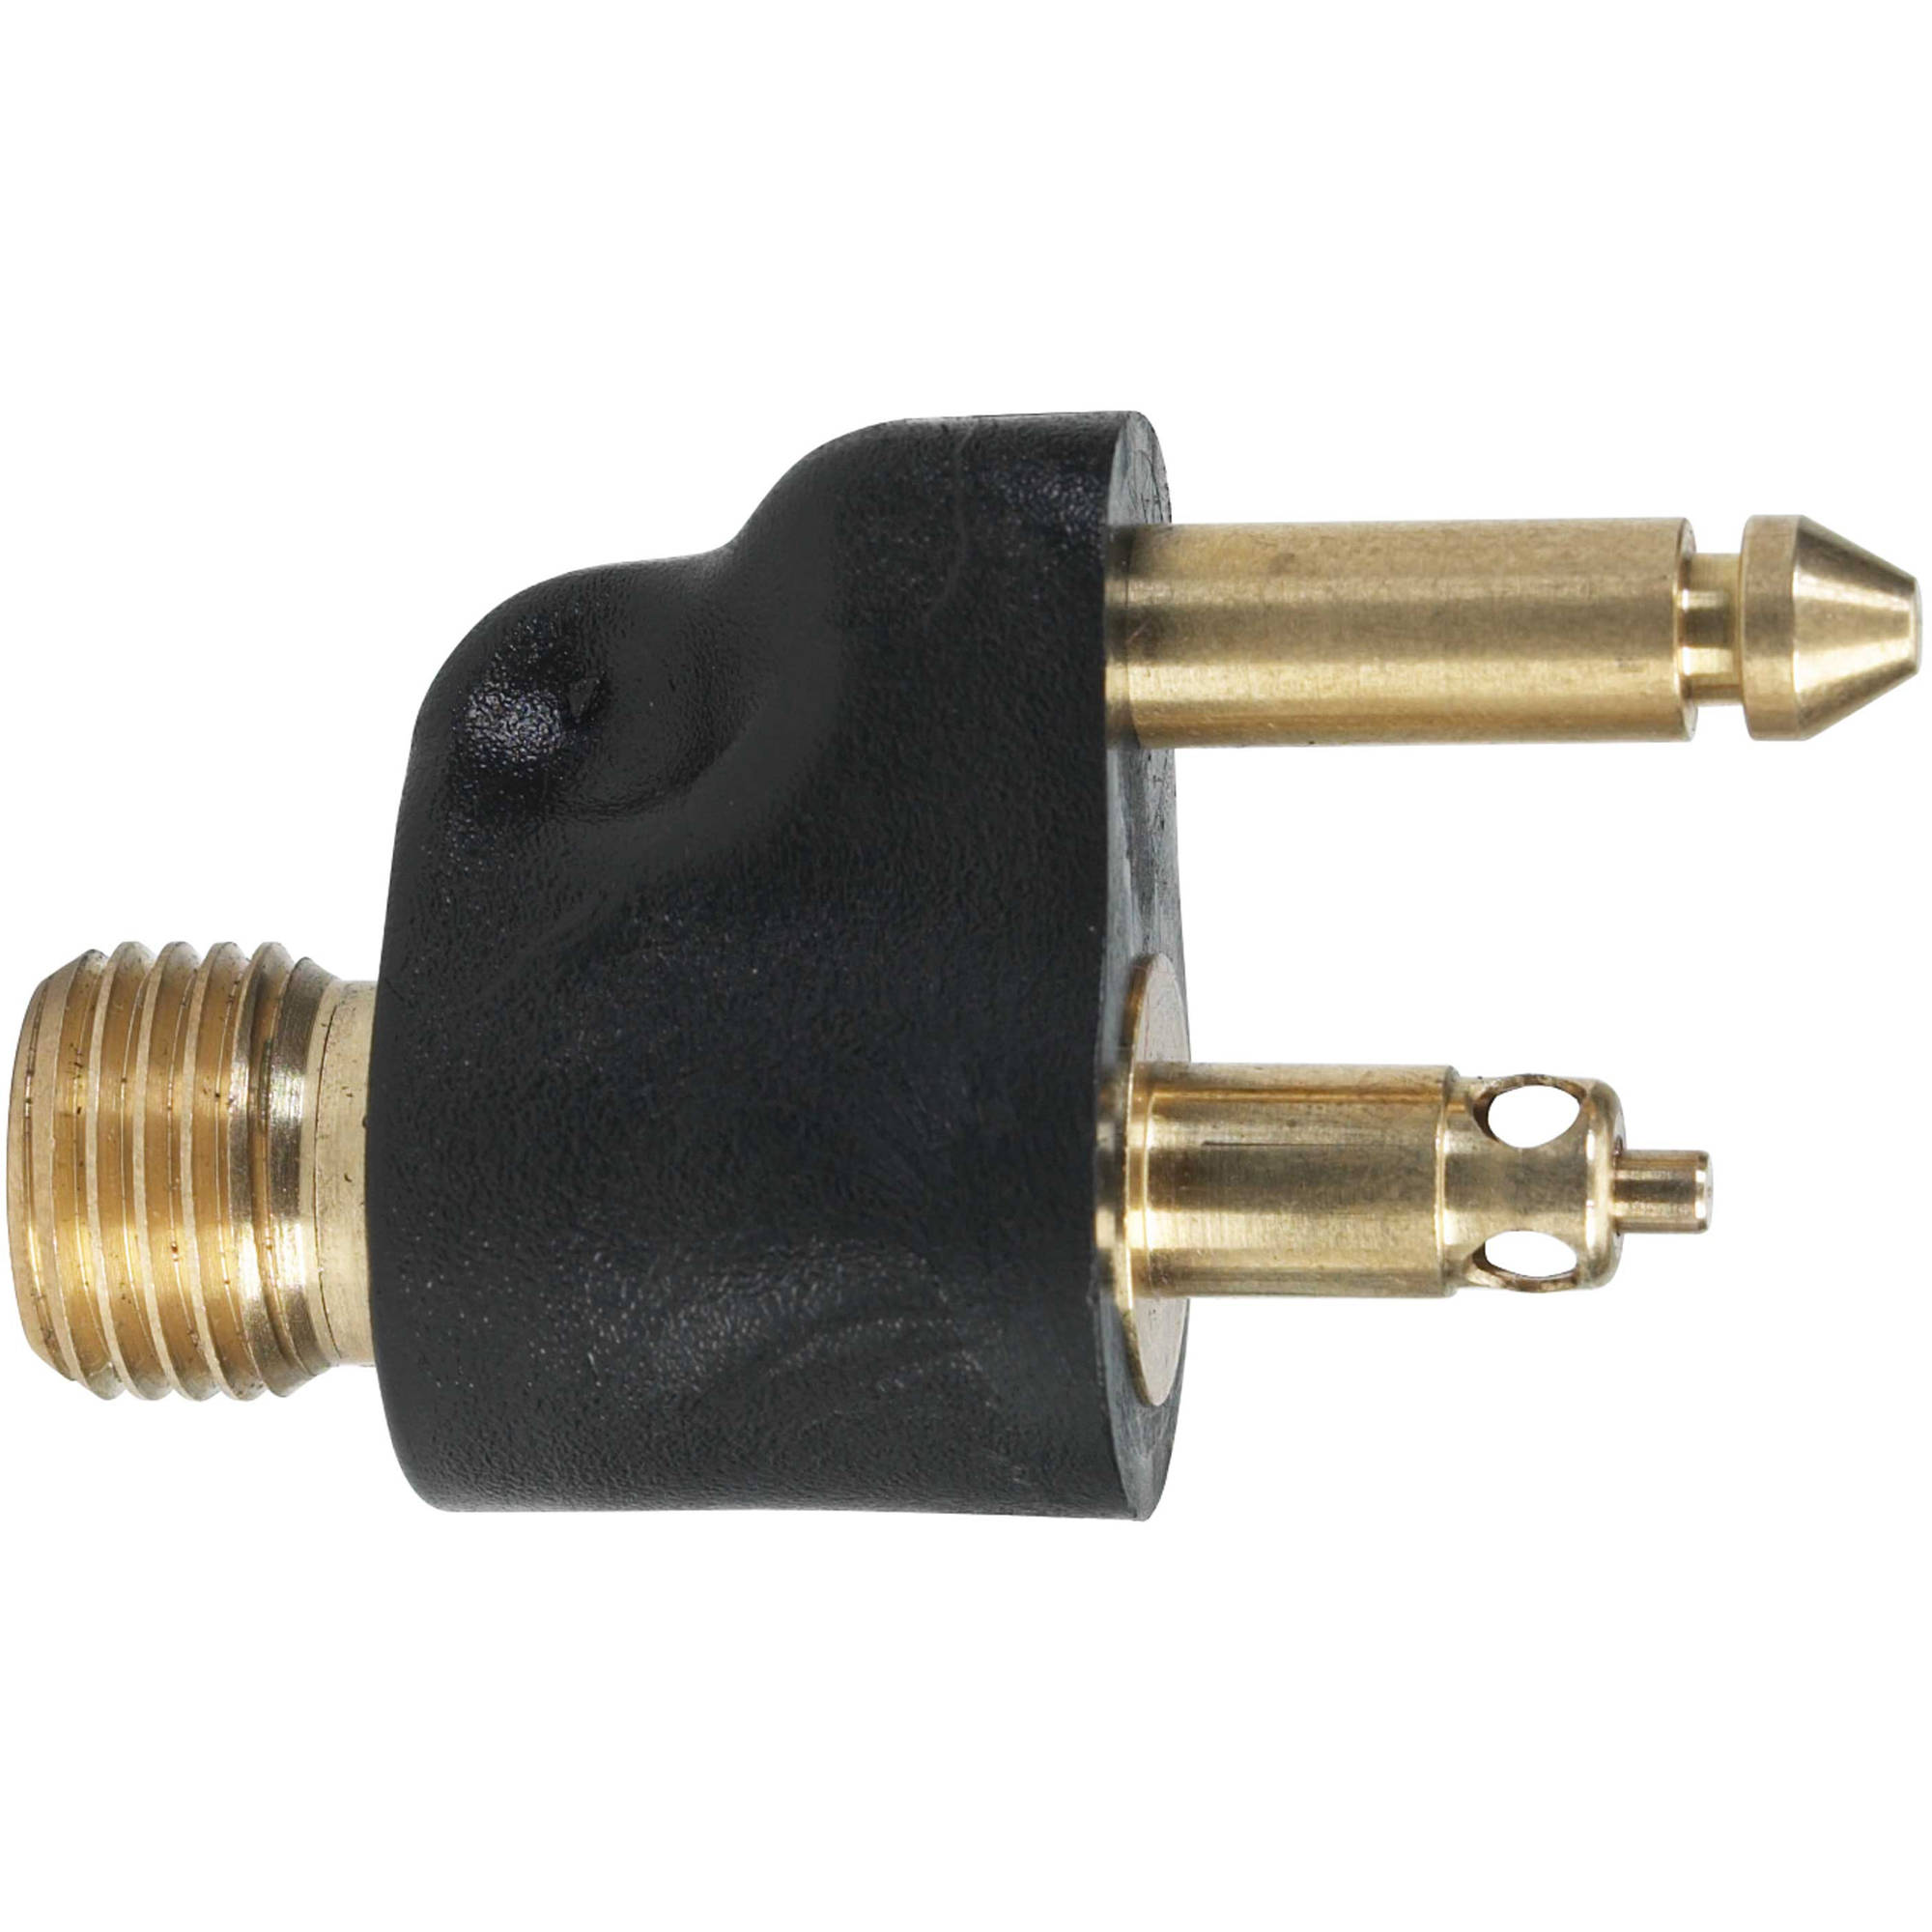 "Scepter 04075 Yamaha Brass Male Tank Fitting, 1/4"" NPT"